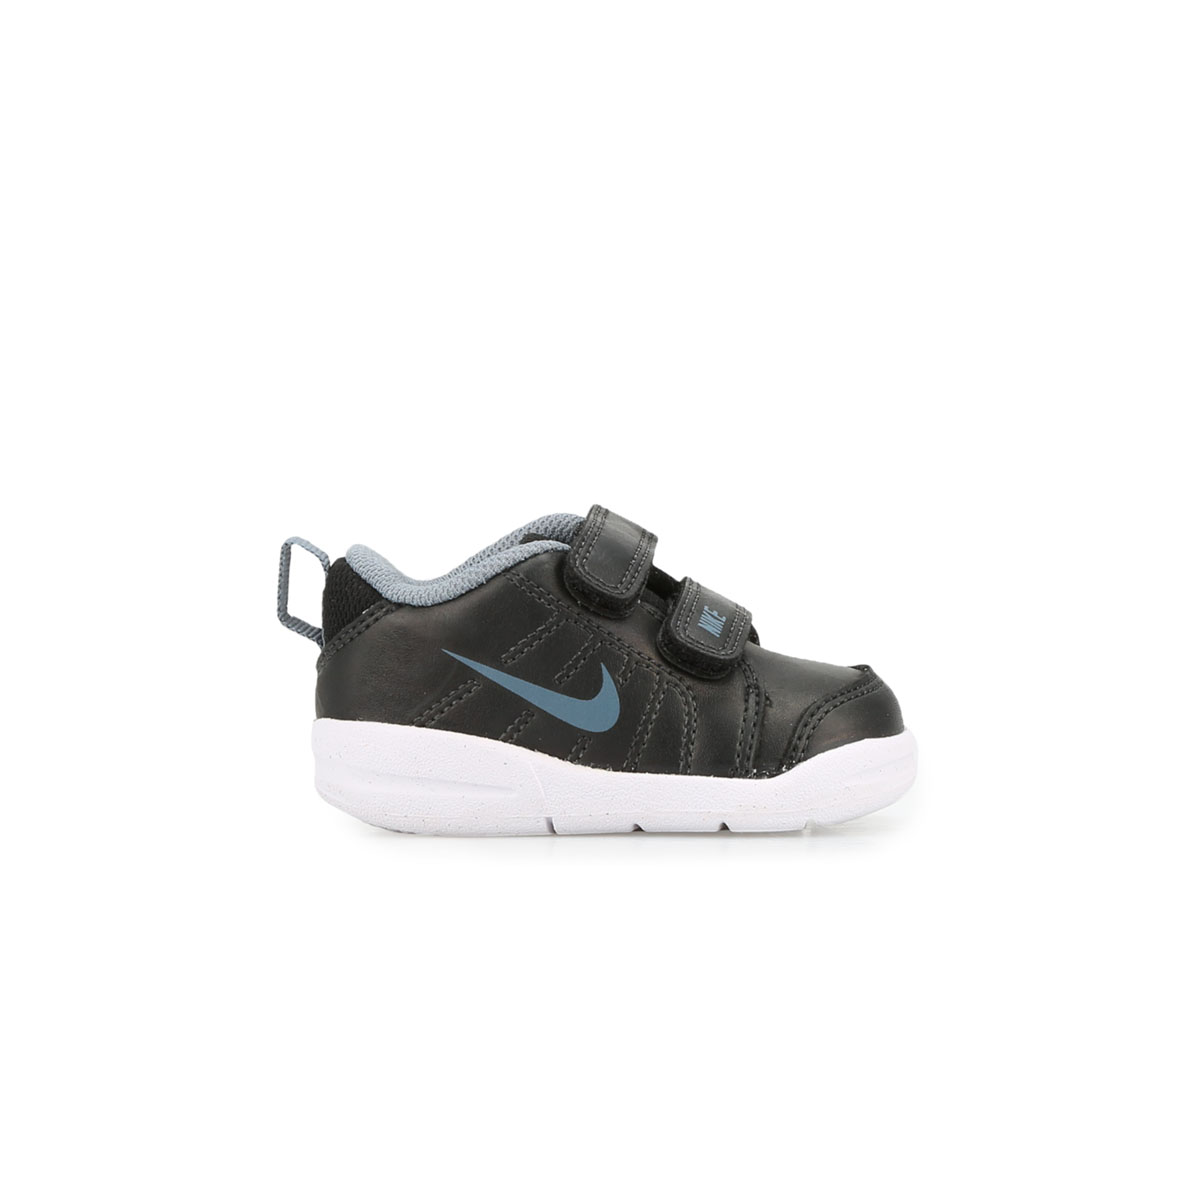 Zapatillas Nike Pico Lt Btv,  image number null